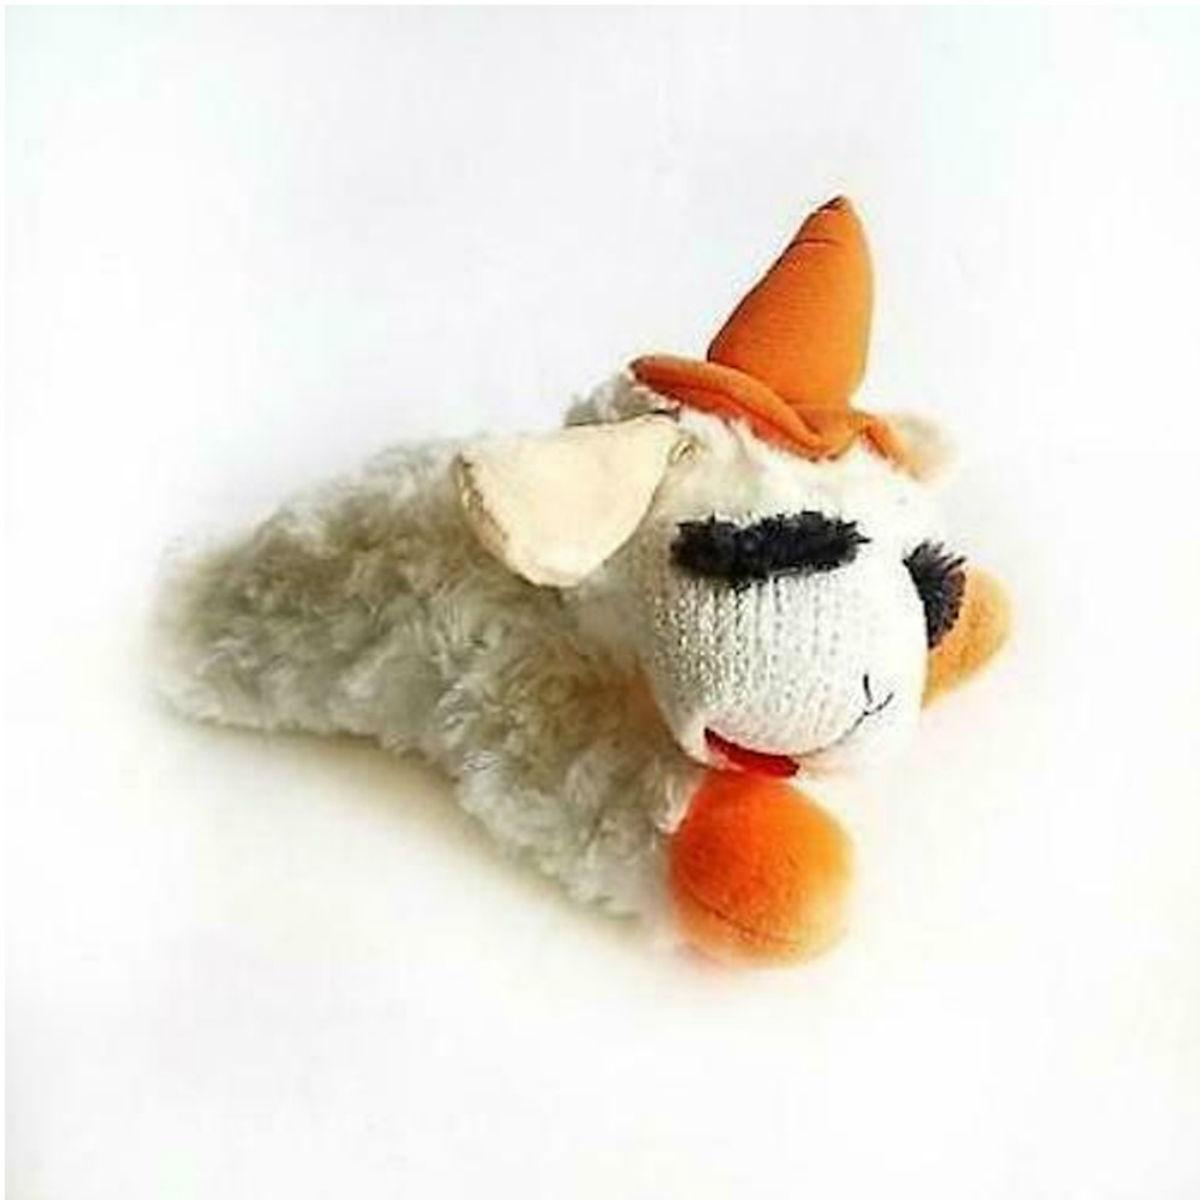 Multipets Halloween Lamb Chop Dog Toy - Orange Witches Hat